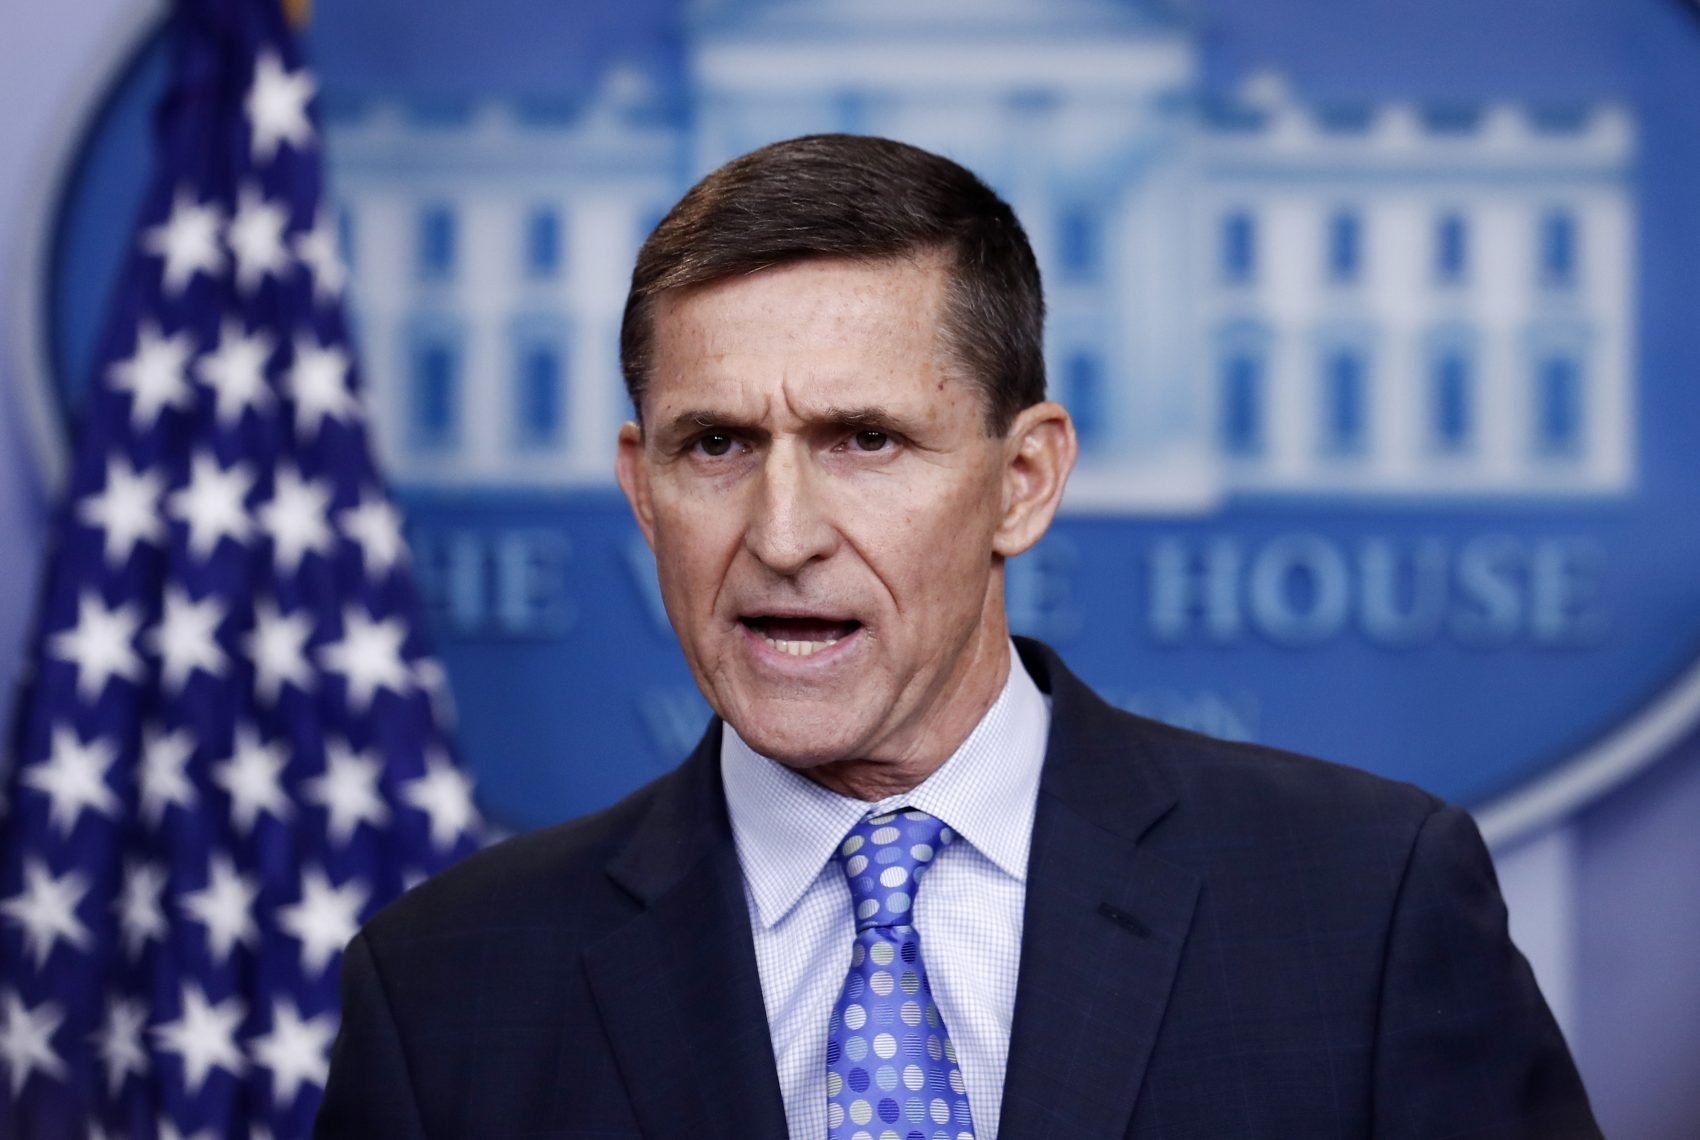 In this Feb. 1, 2017 file photo, National Security Adviser Michael Flynn speaks during the daily news briefing at the White House. (Carolyn Kaster/AP)